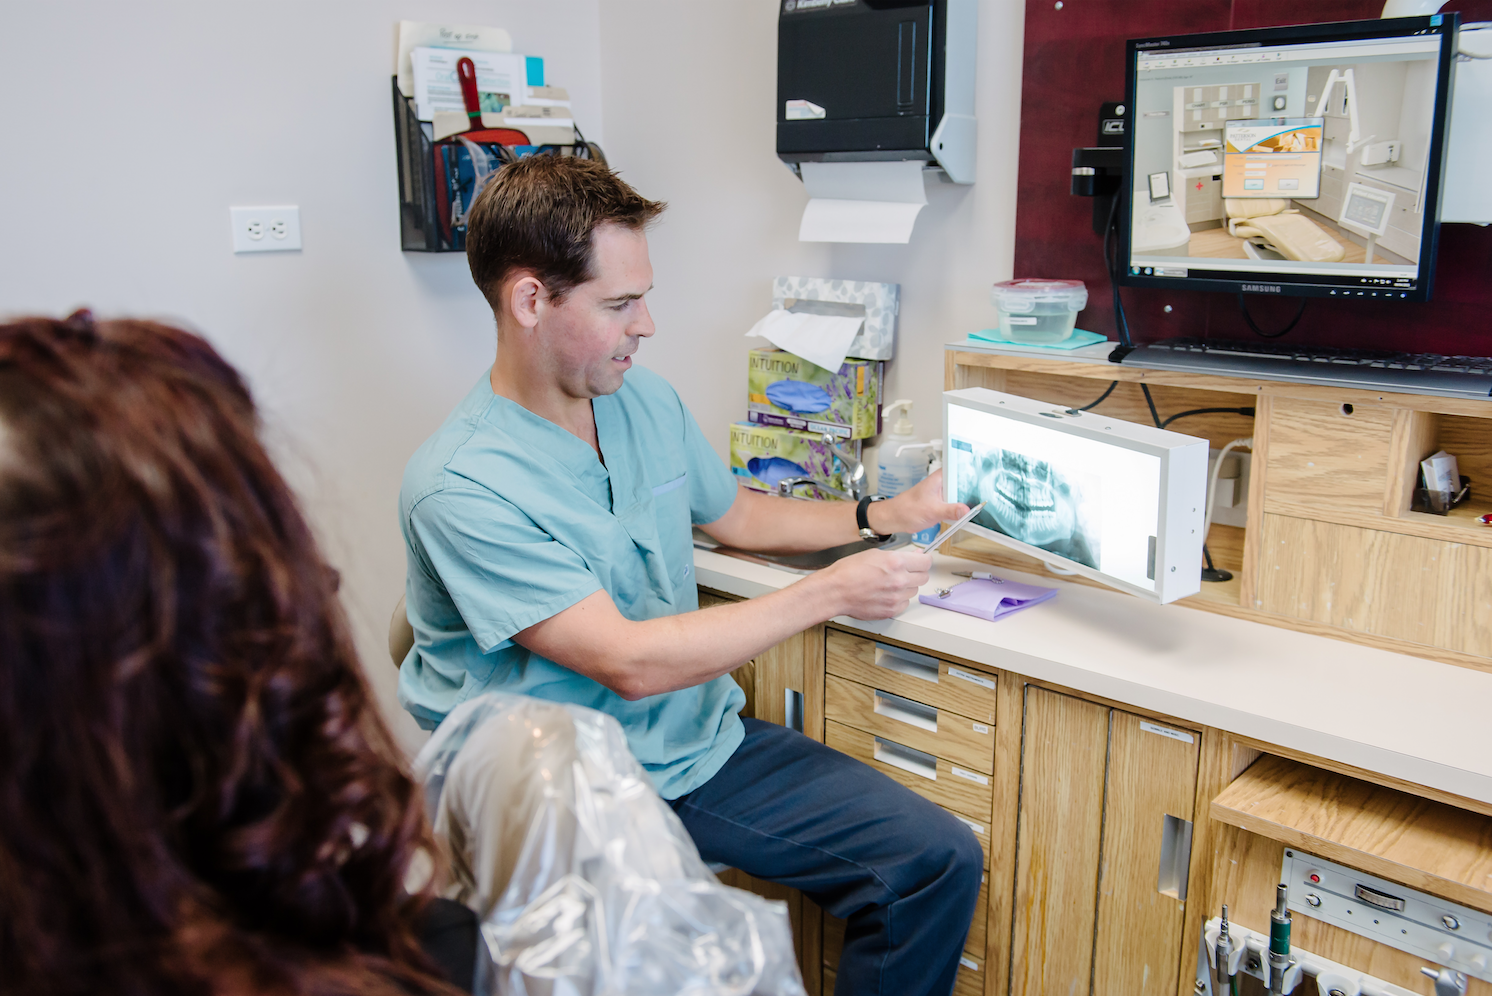 Dentist and patient in a dental clinic